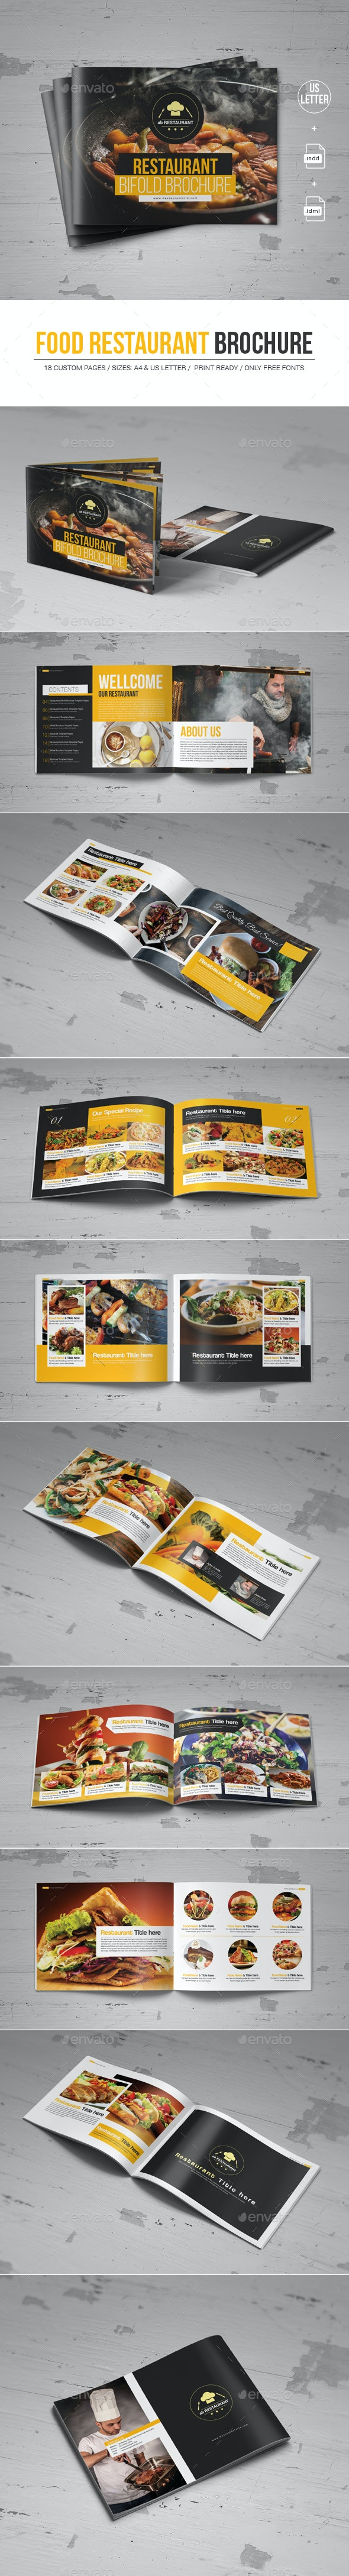 Food Restaurant Brochure - Corporate Brochures